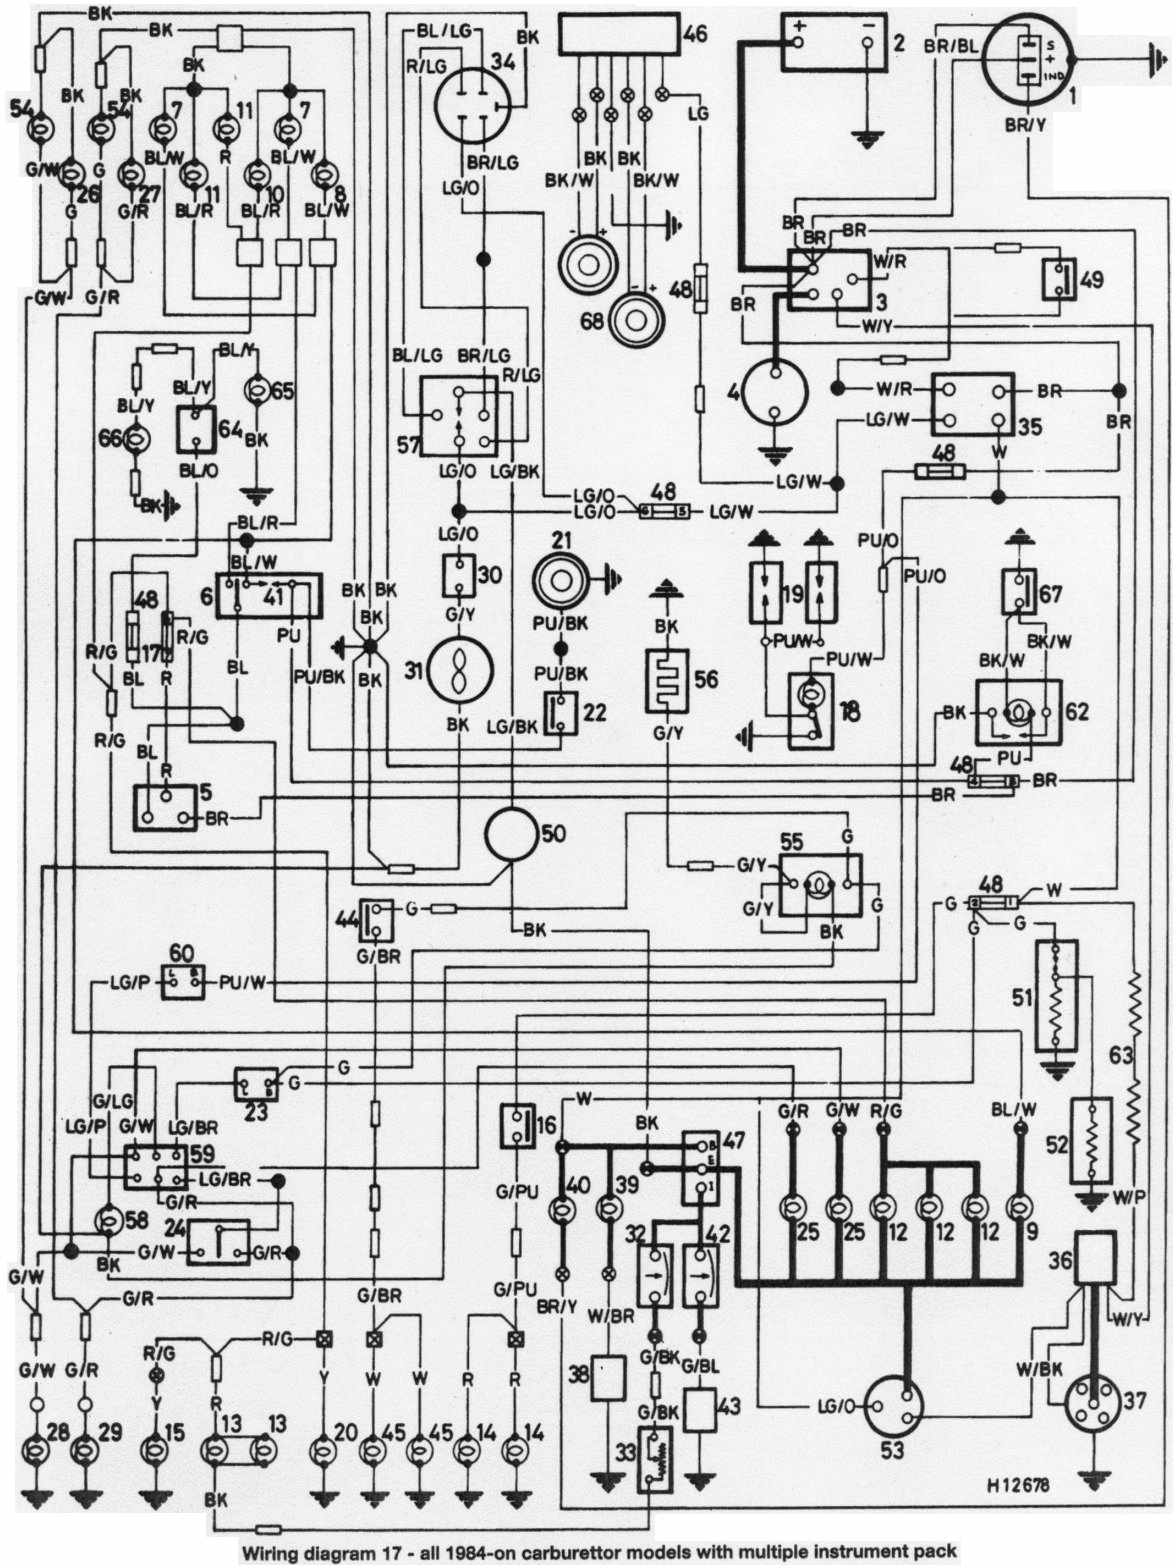 wiring diagram of 1984 onwards all mini series with multiple instrument pack?t\=1508499130 bmw mini wiring diagram gem e2 wiring diagrams \u2022 wiring diagrams 1979 volvo 242 dl wiring diagram at aneh.co